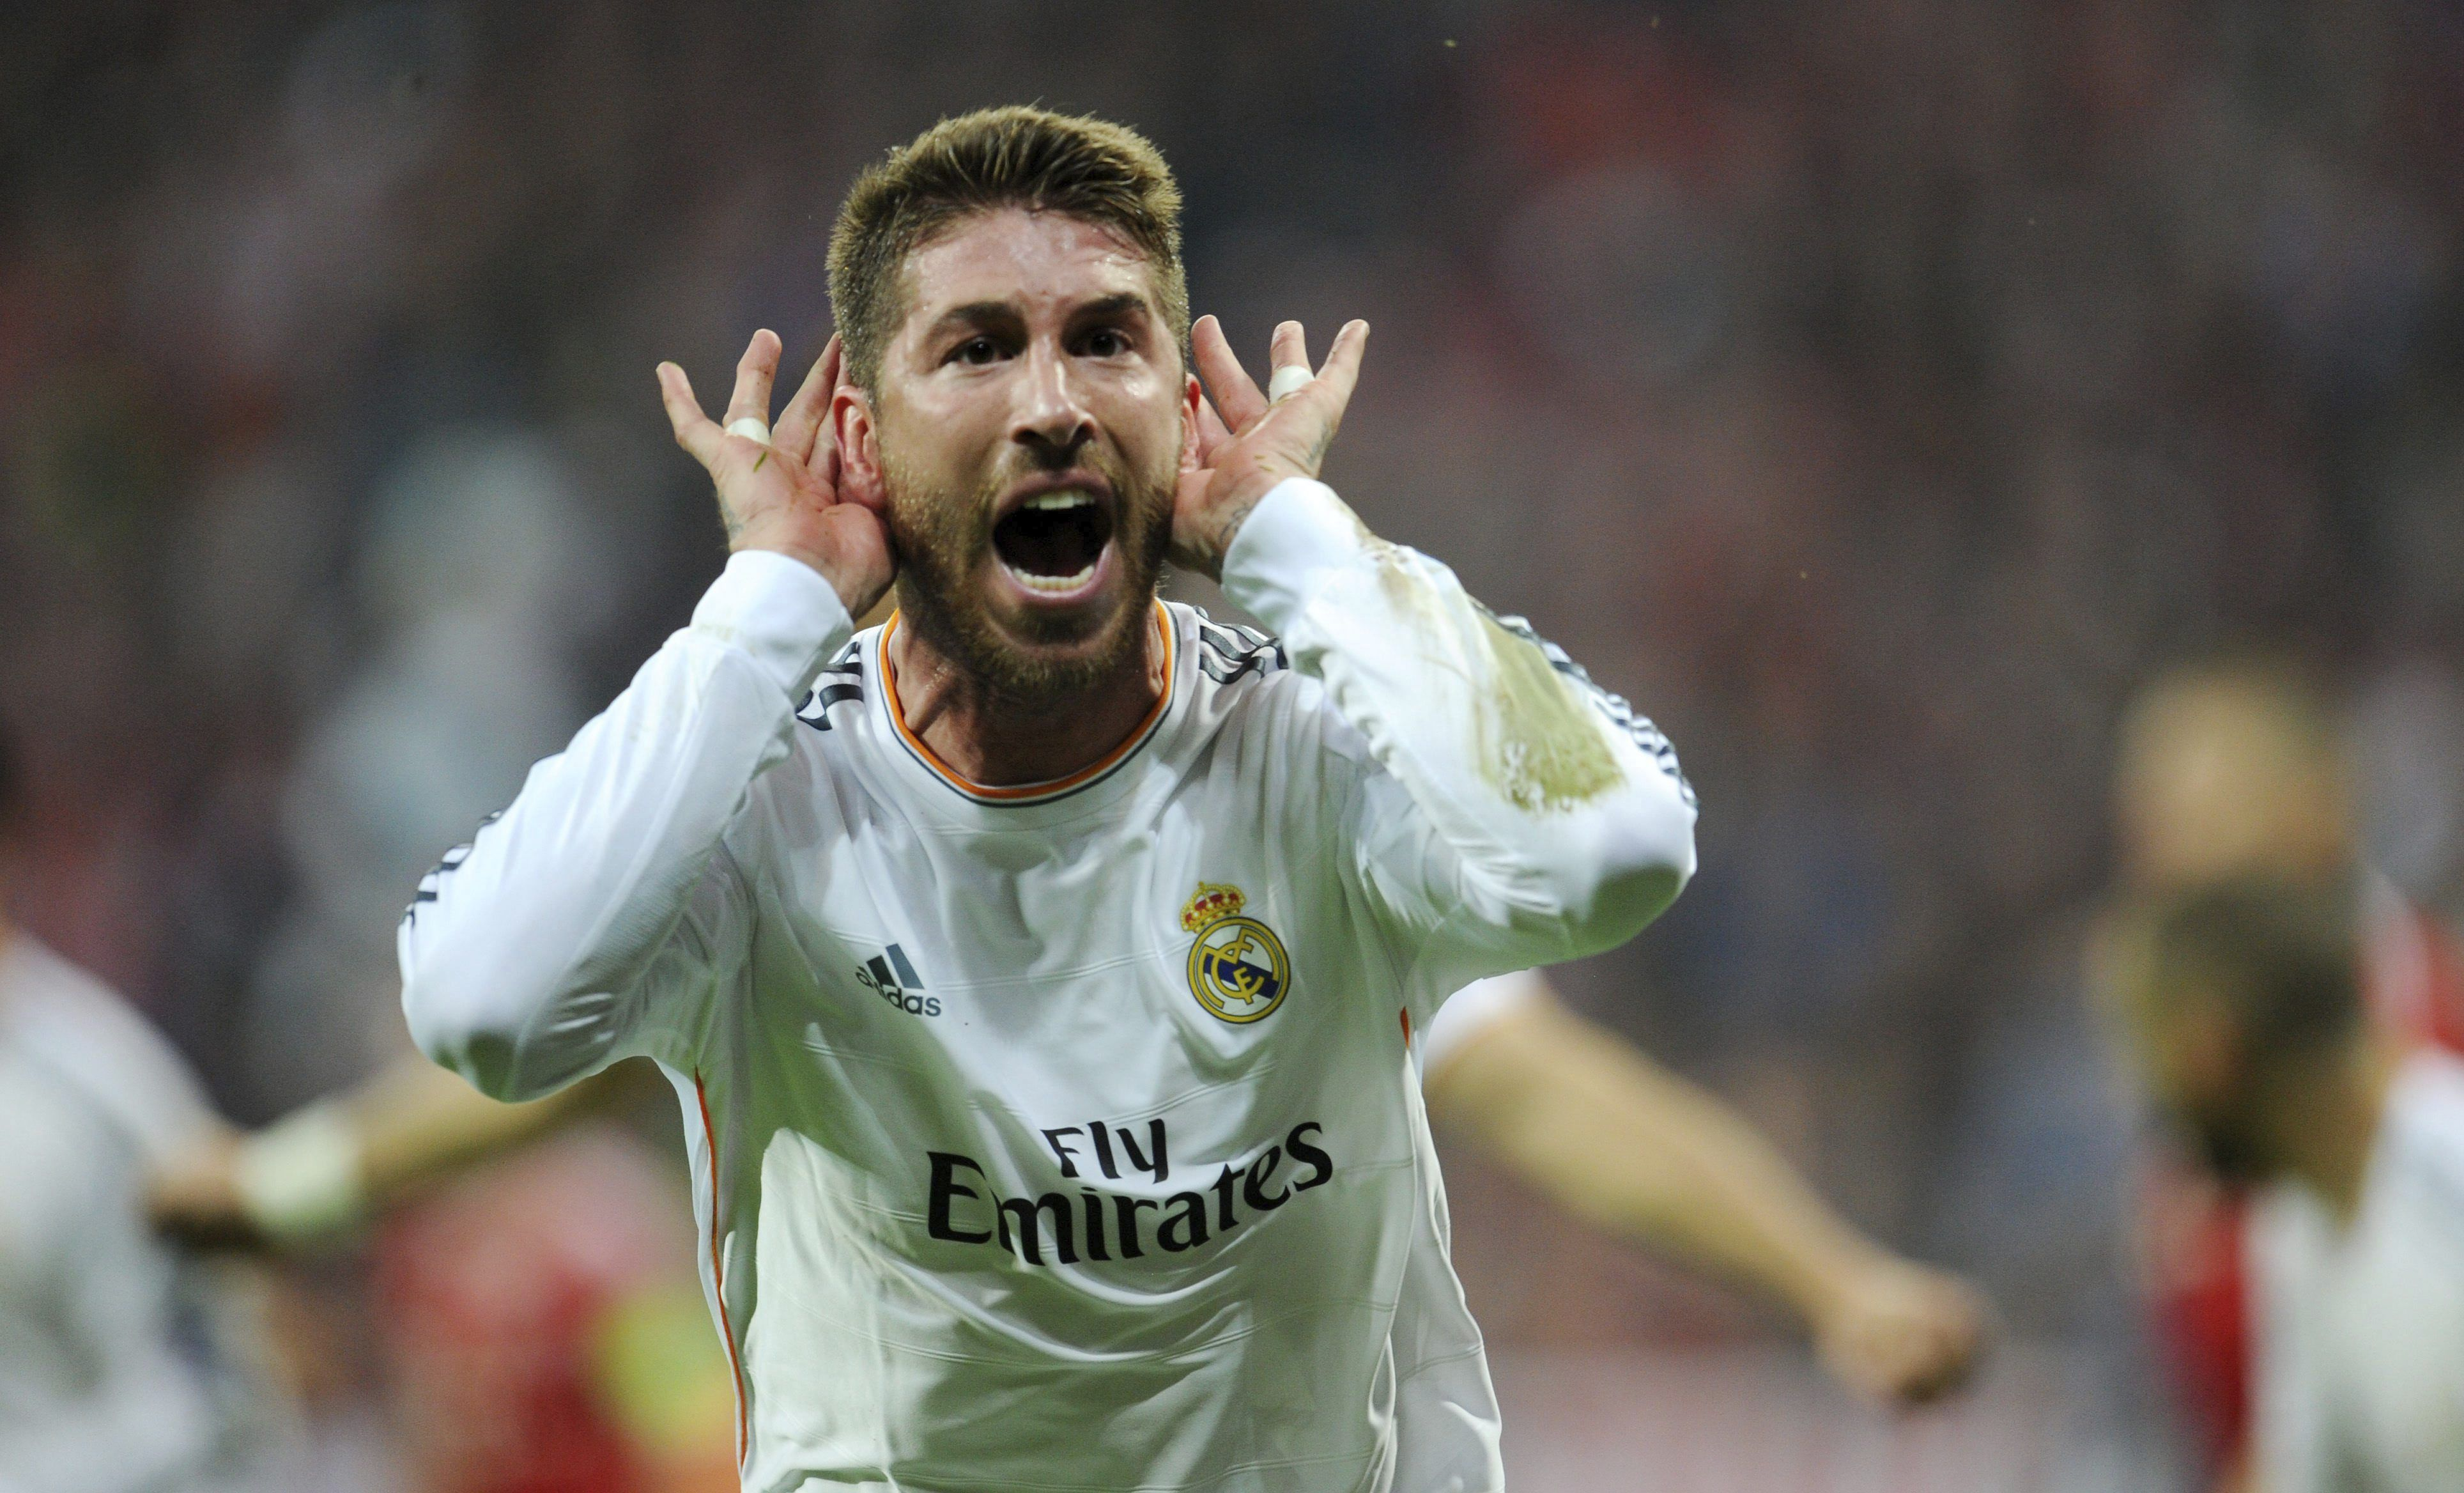 Sergio Ramos Wallpapers Images Photos Pictures Backgrounds